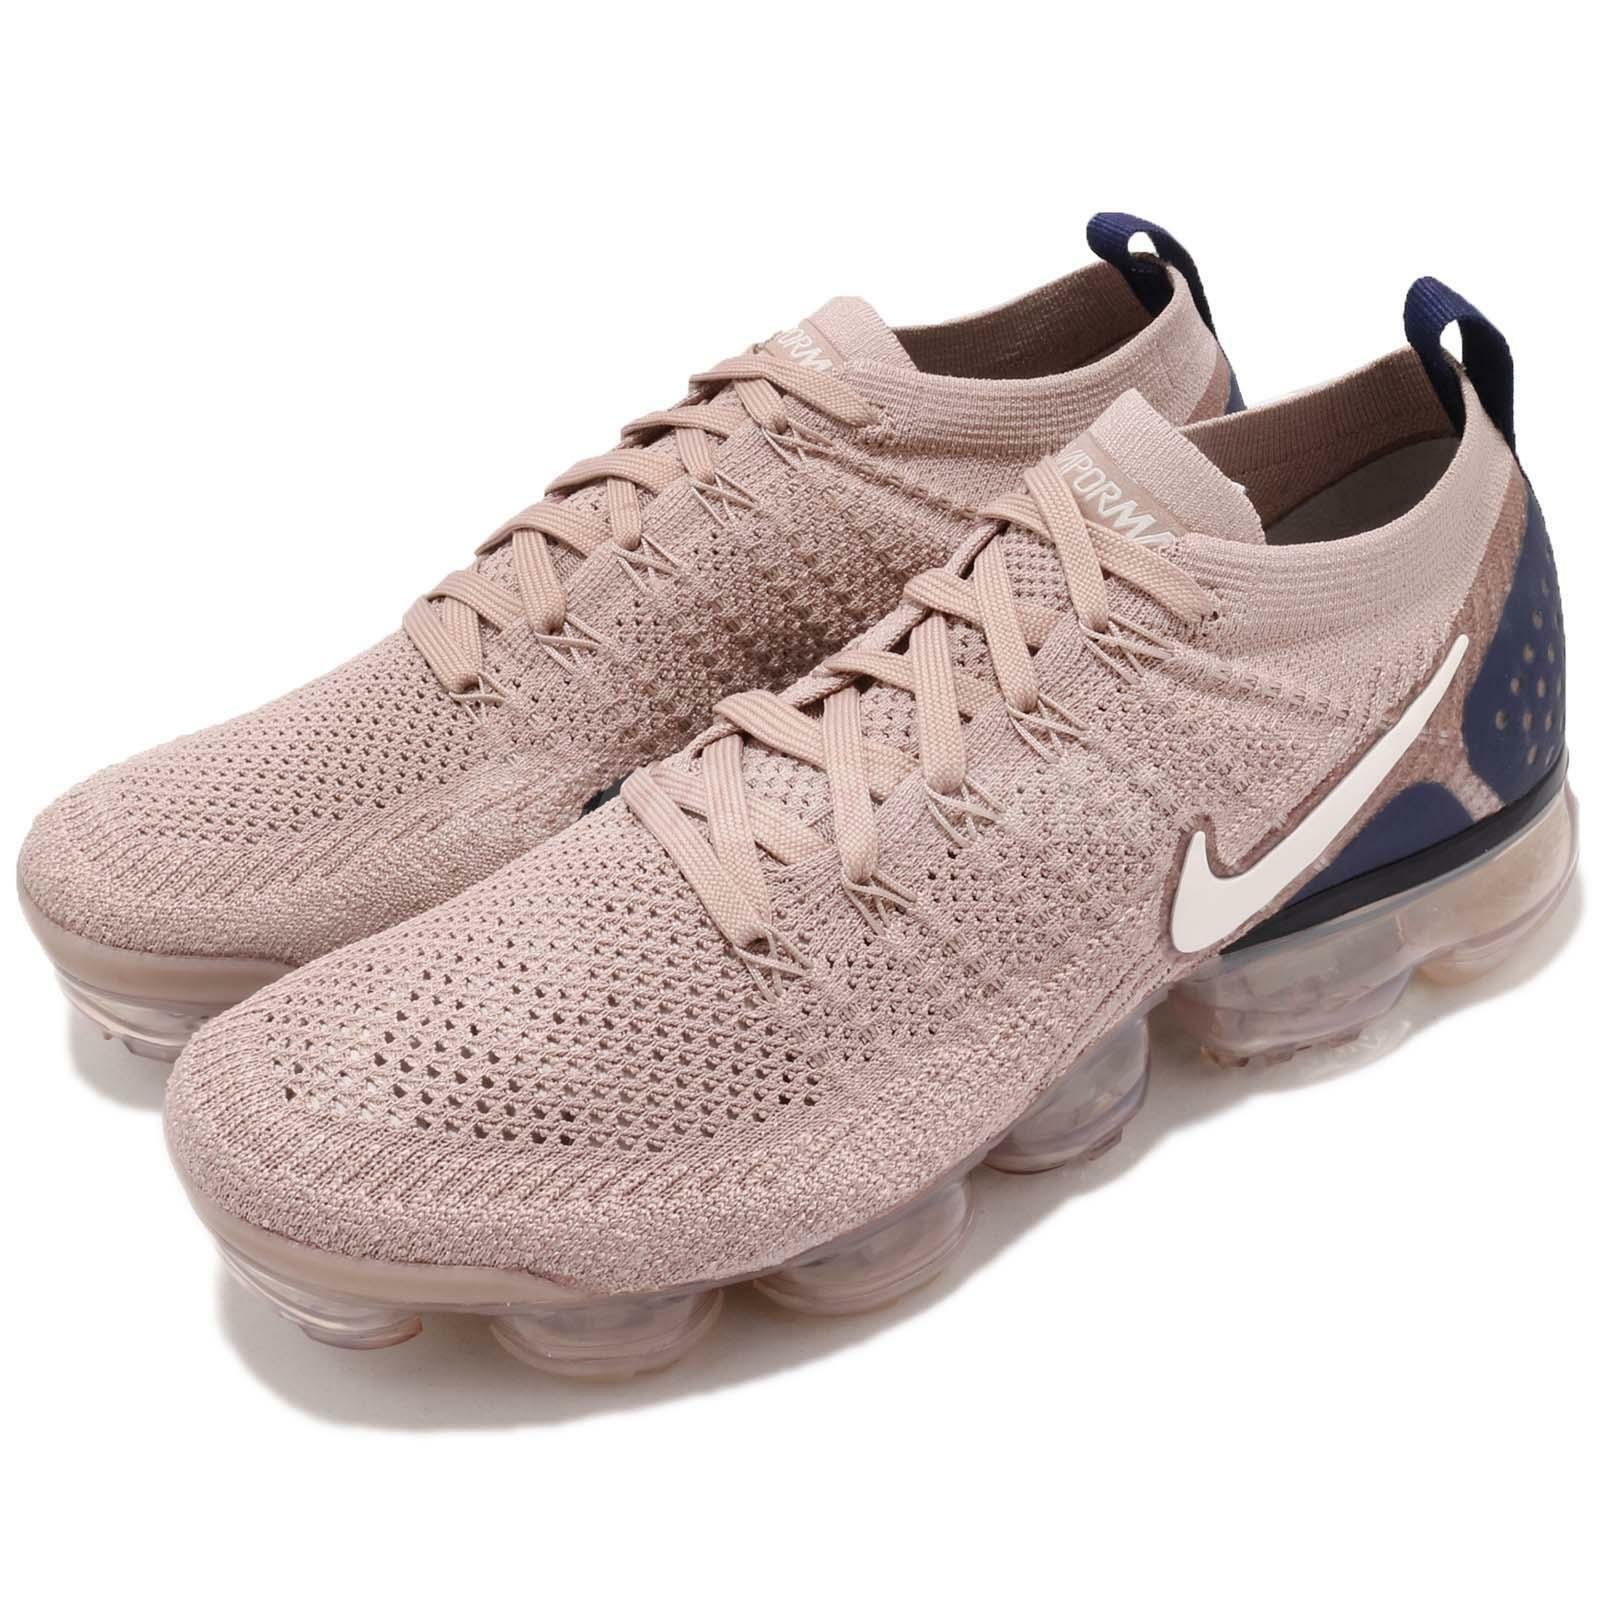 Nike Air Vapormax Flyknit 2 2.0 Max Difused Taupe Mens Running shoes 942842-201